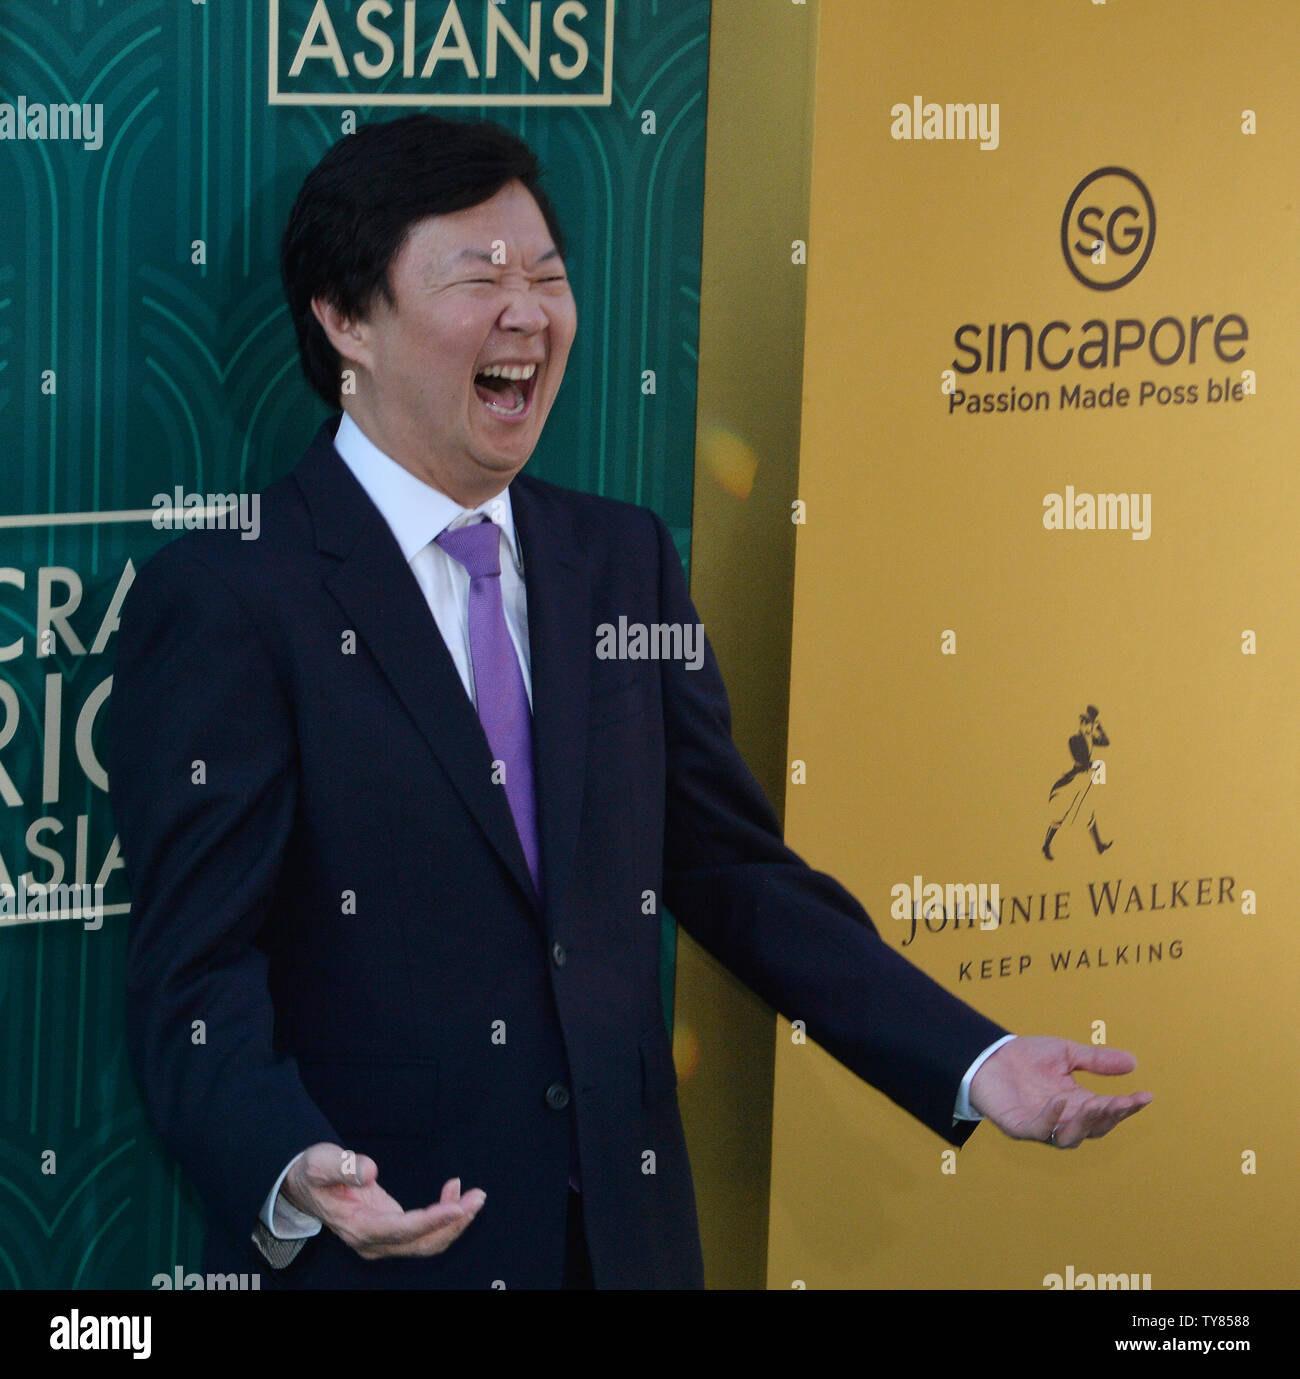 Cast member Ken Jeong attends the premiere of the motion picture comedy 'Crazy Rich Asians' at the TCL Chinese Theatre in the Hollywood section of Los Angeles on July 7, 2018. The story follows Rachel Chu (Wu), an American-born Chinese economics professor, who travels to her boyfriend Nick's (Henry Golding) hometown of Singapore for his best friend's wedding. Before long, his secret is out: Nick is from a family that is impossibly wealthy, he's perhaps the most eligible bachelor in Asia, and every single woman in his ultra-rarefied social class is incredibly jealous of Rachel and wants to brin - Stock Image